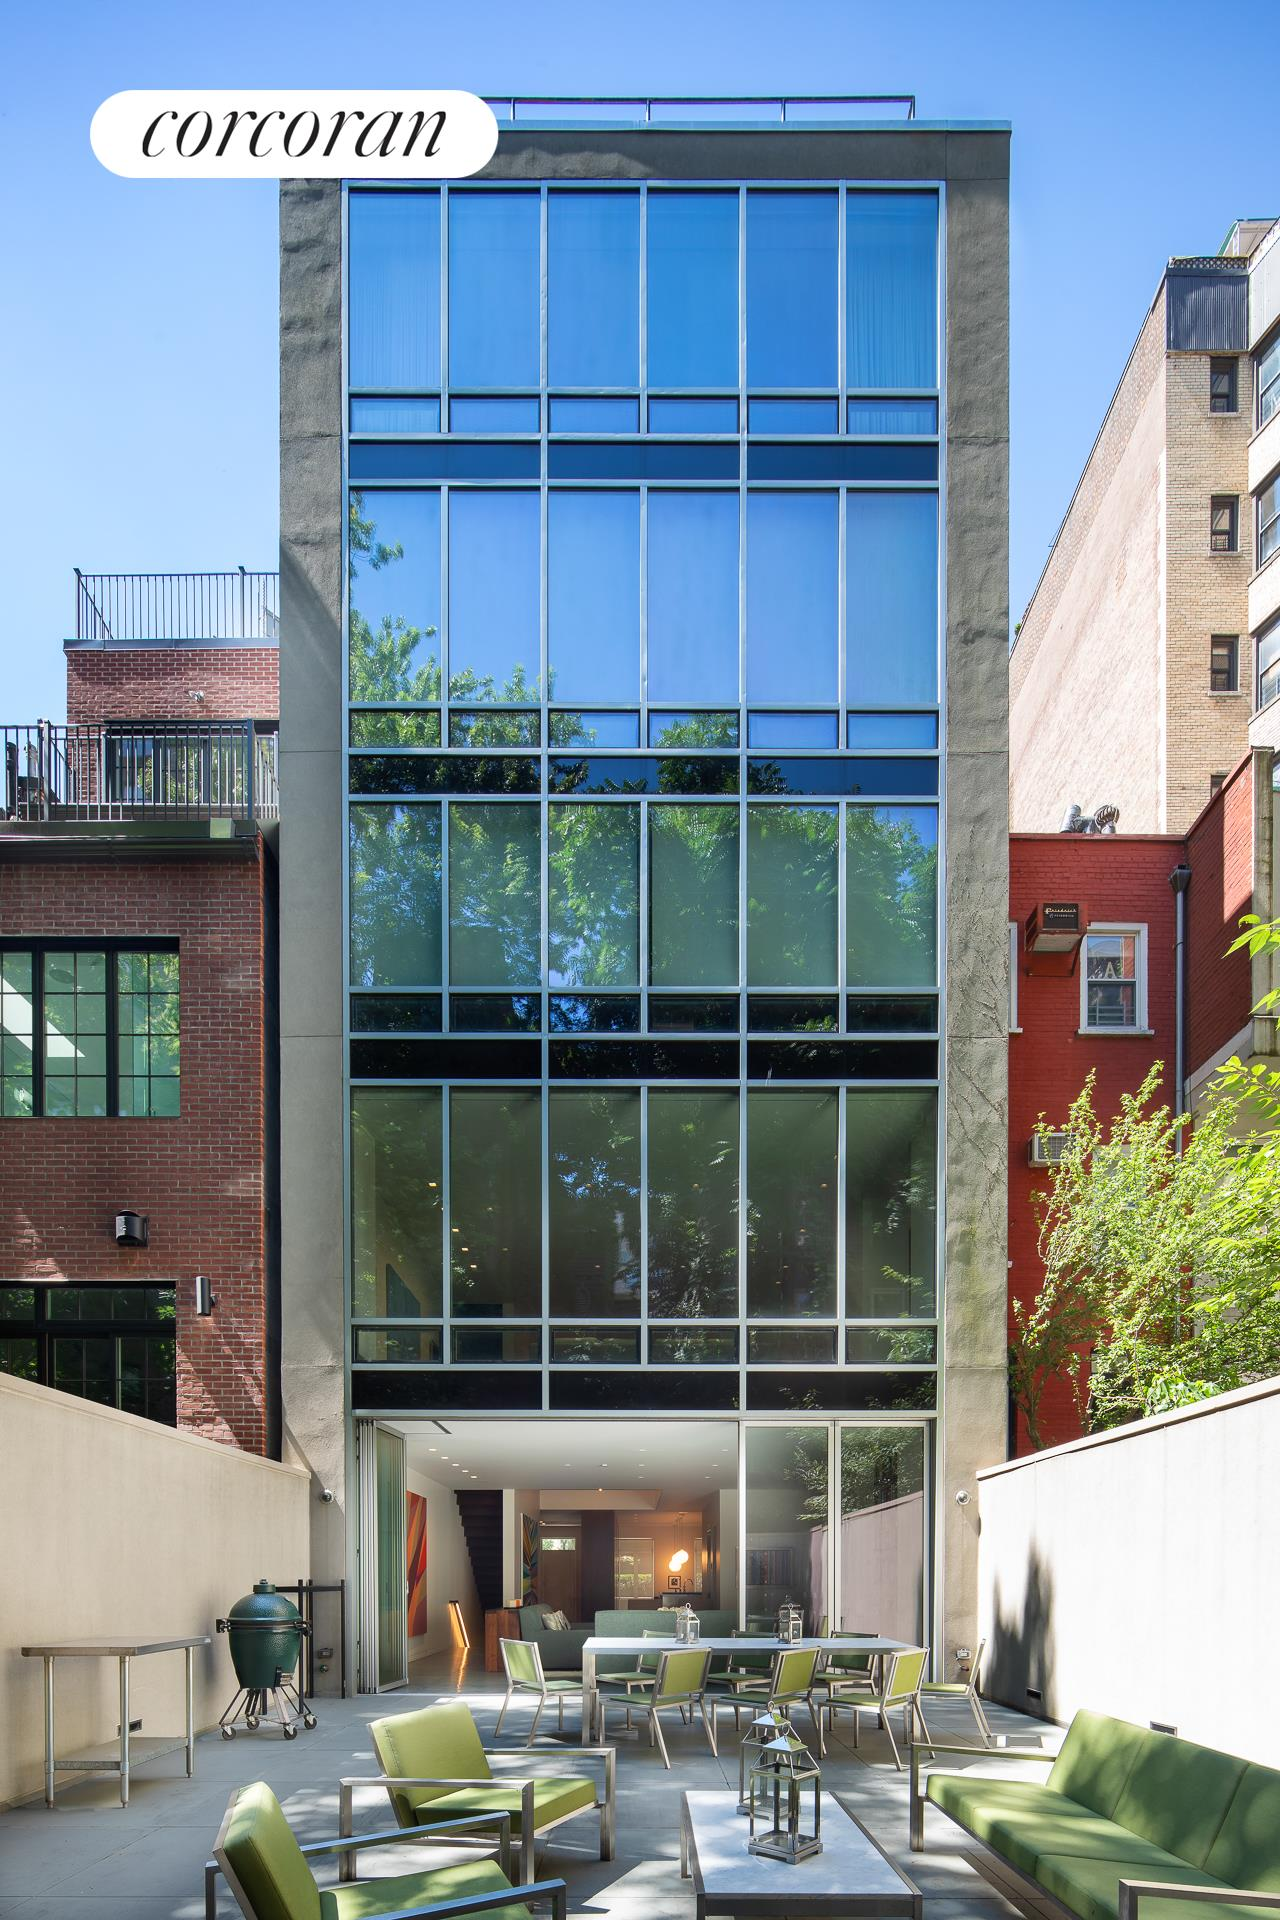 125 East 92nd Street, Building Exterior